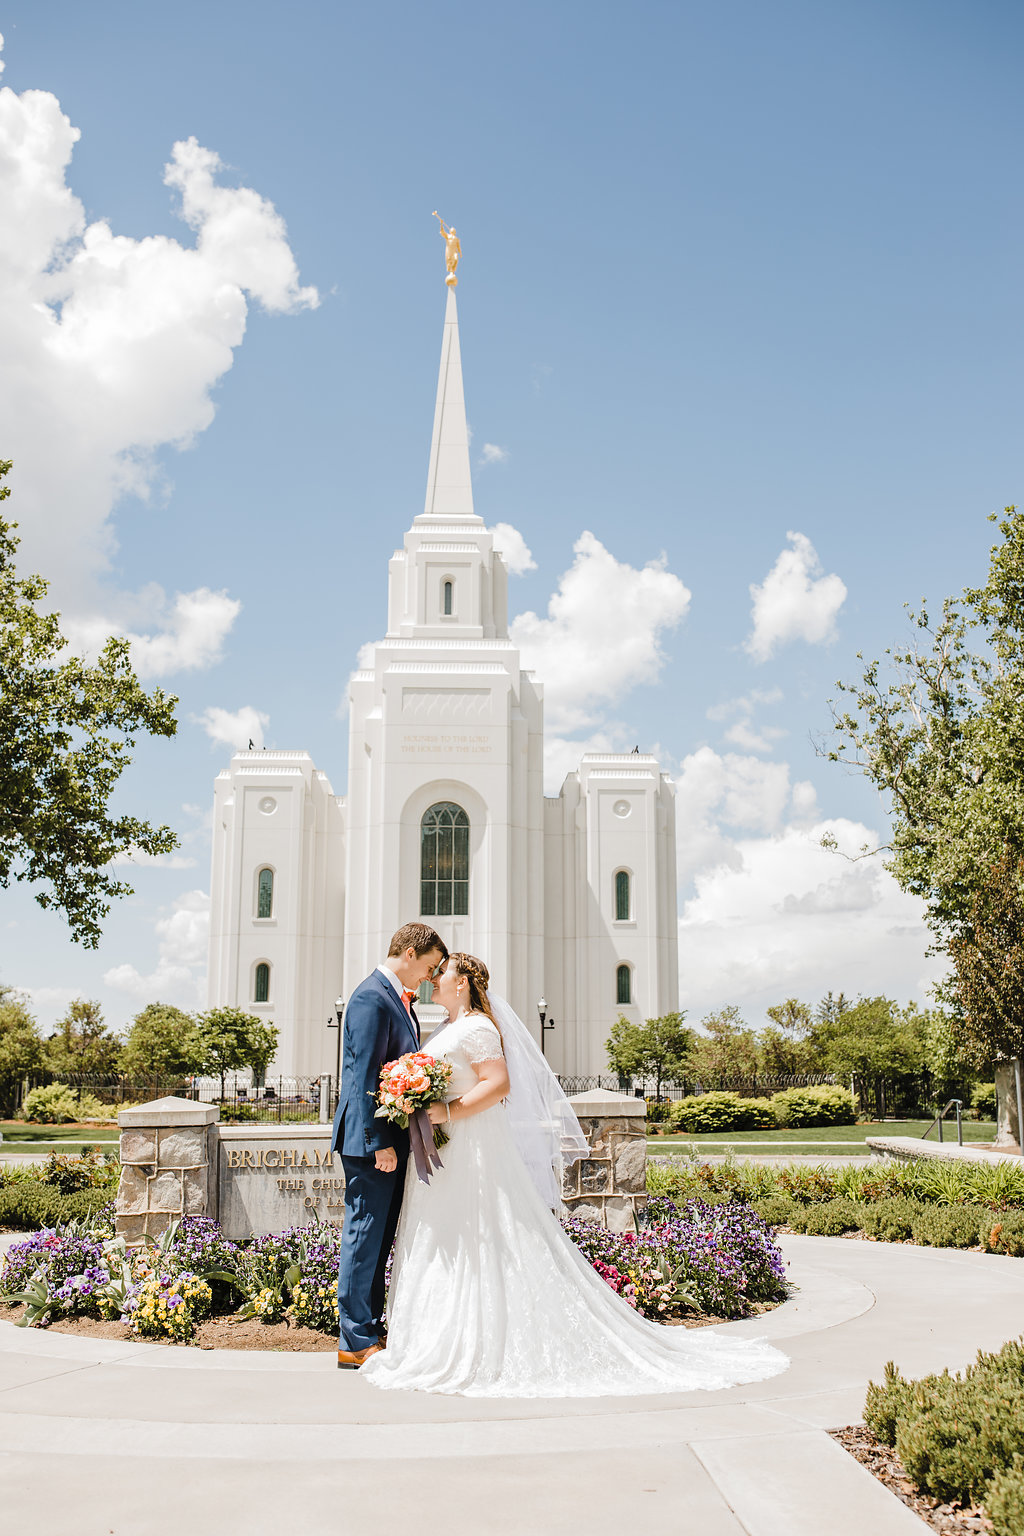 best professional wedding day photographer in brigham city utah calli richards at the temple